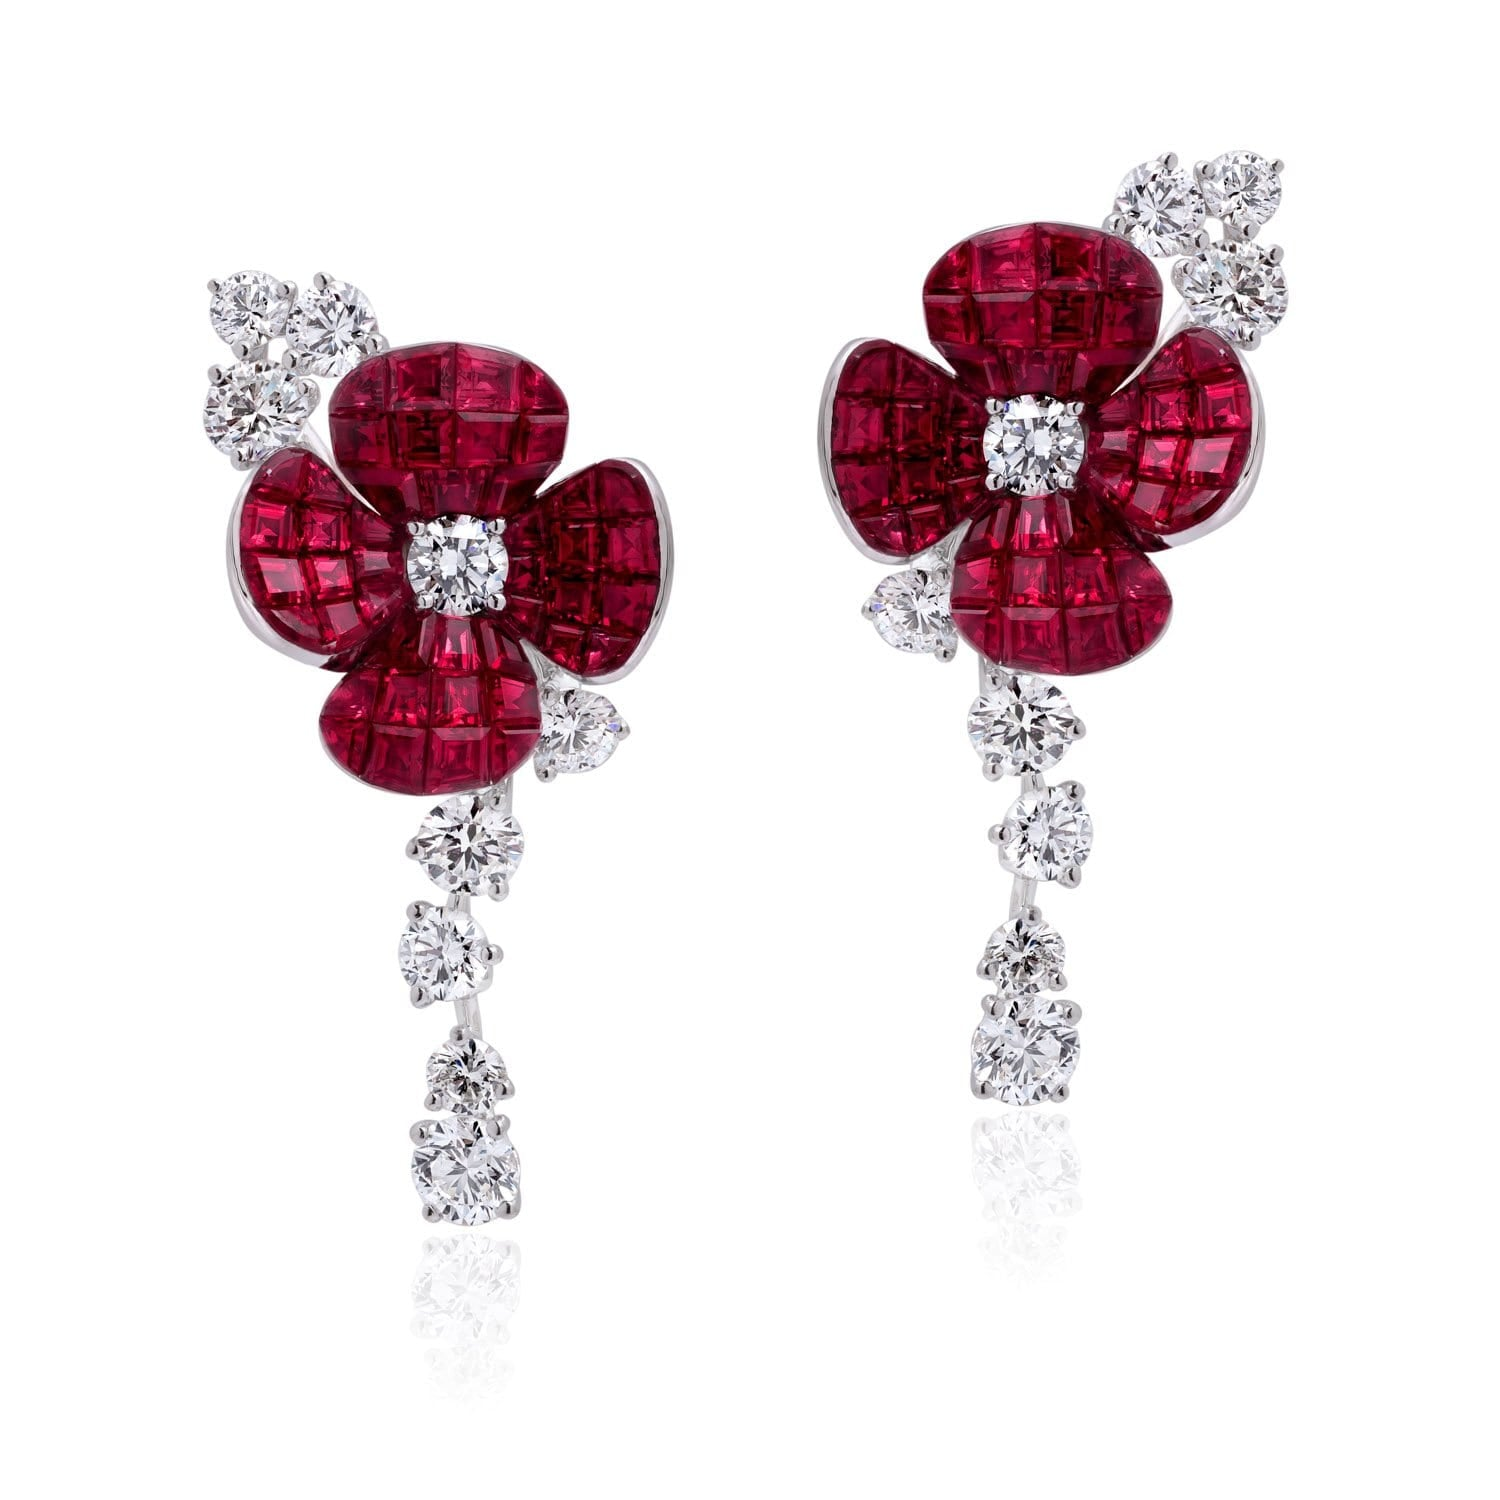 FLORAL, Hortensia Earrings